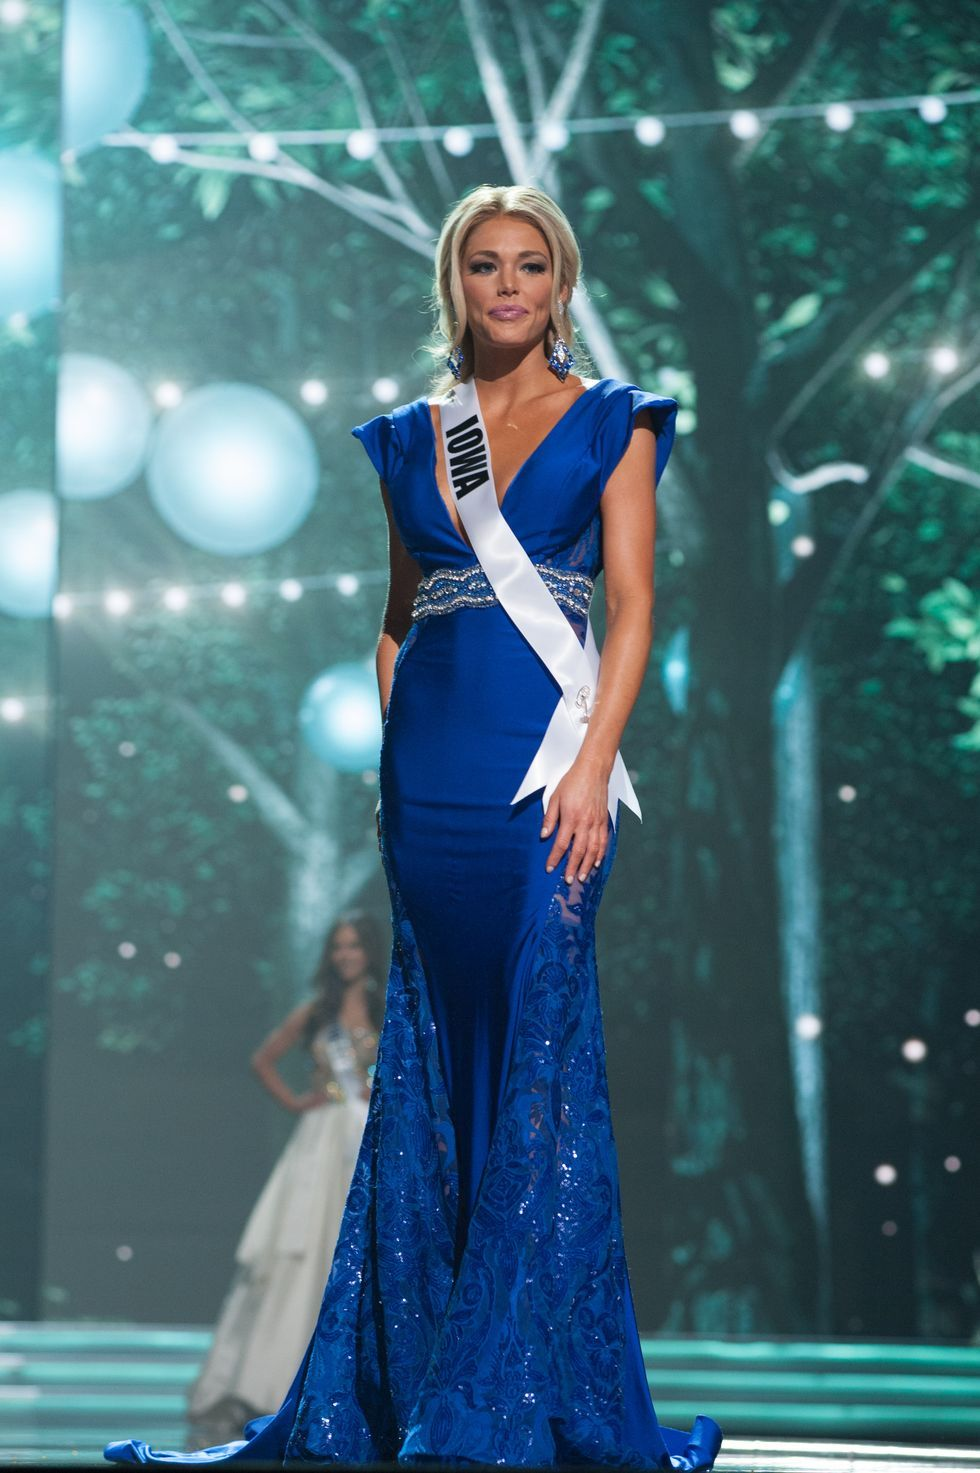 Who Is Kelsey Weier? - Peter Weber 'Bachelor' Contestant Was Miss Iowa